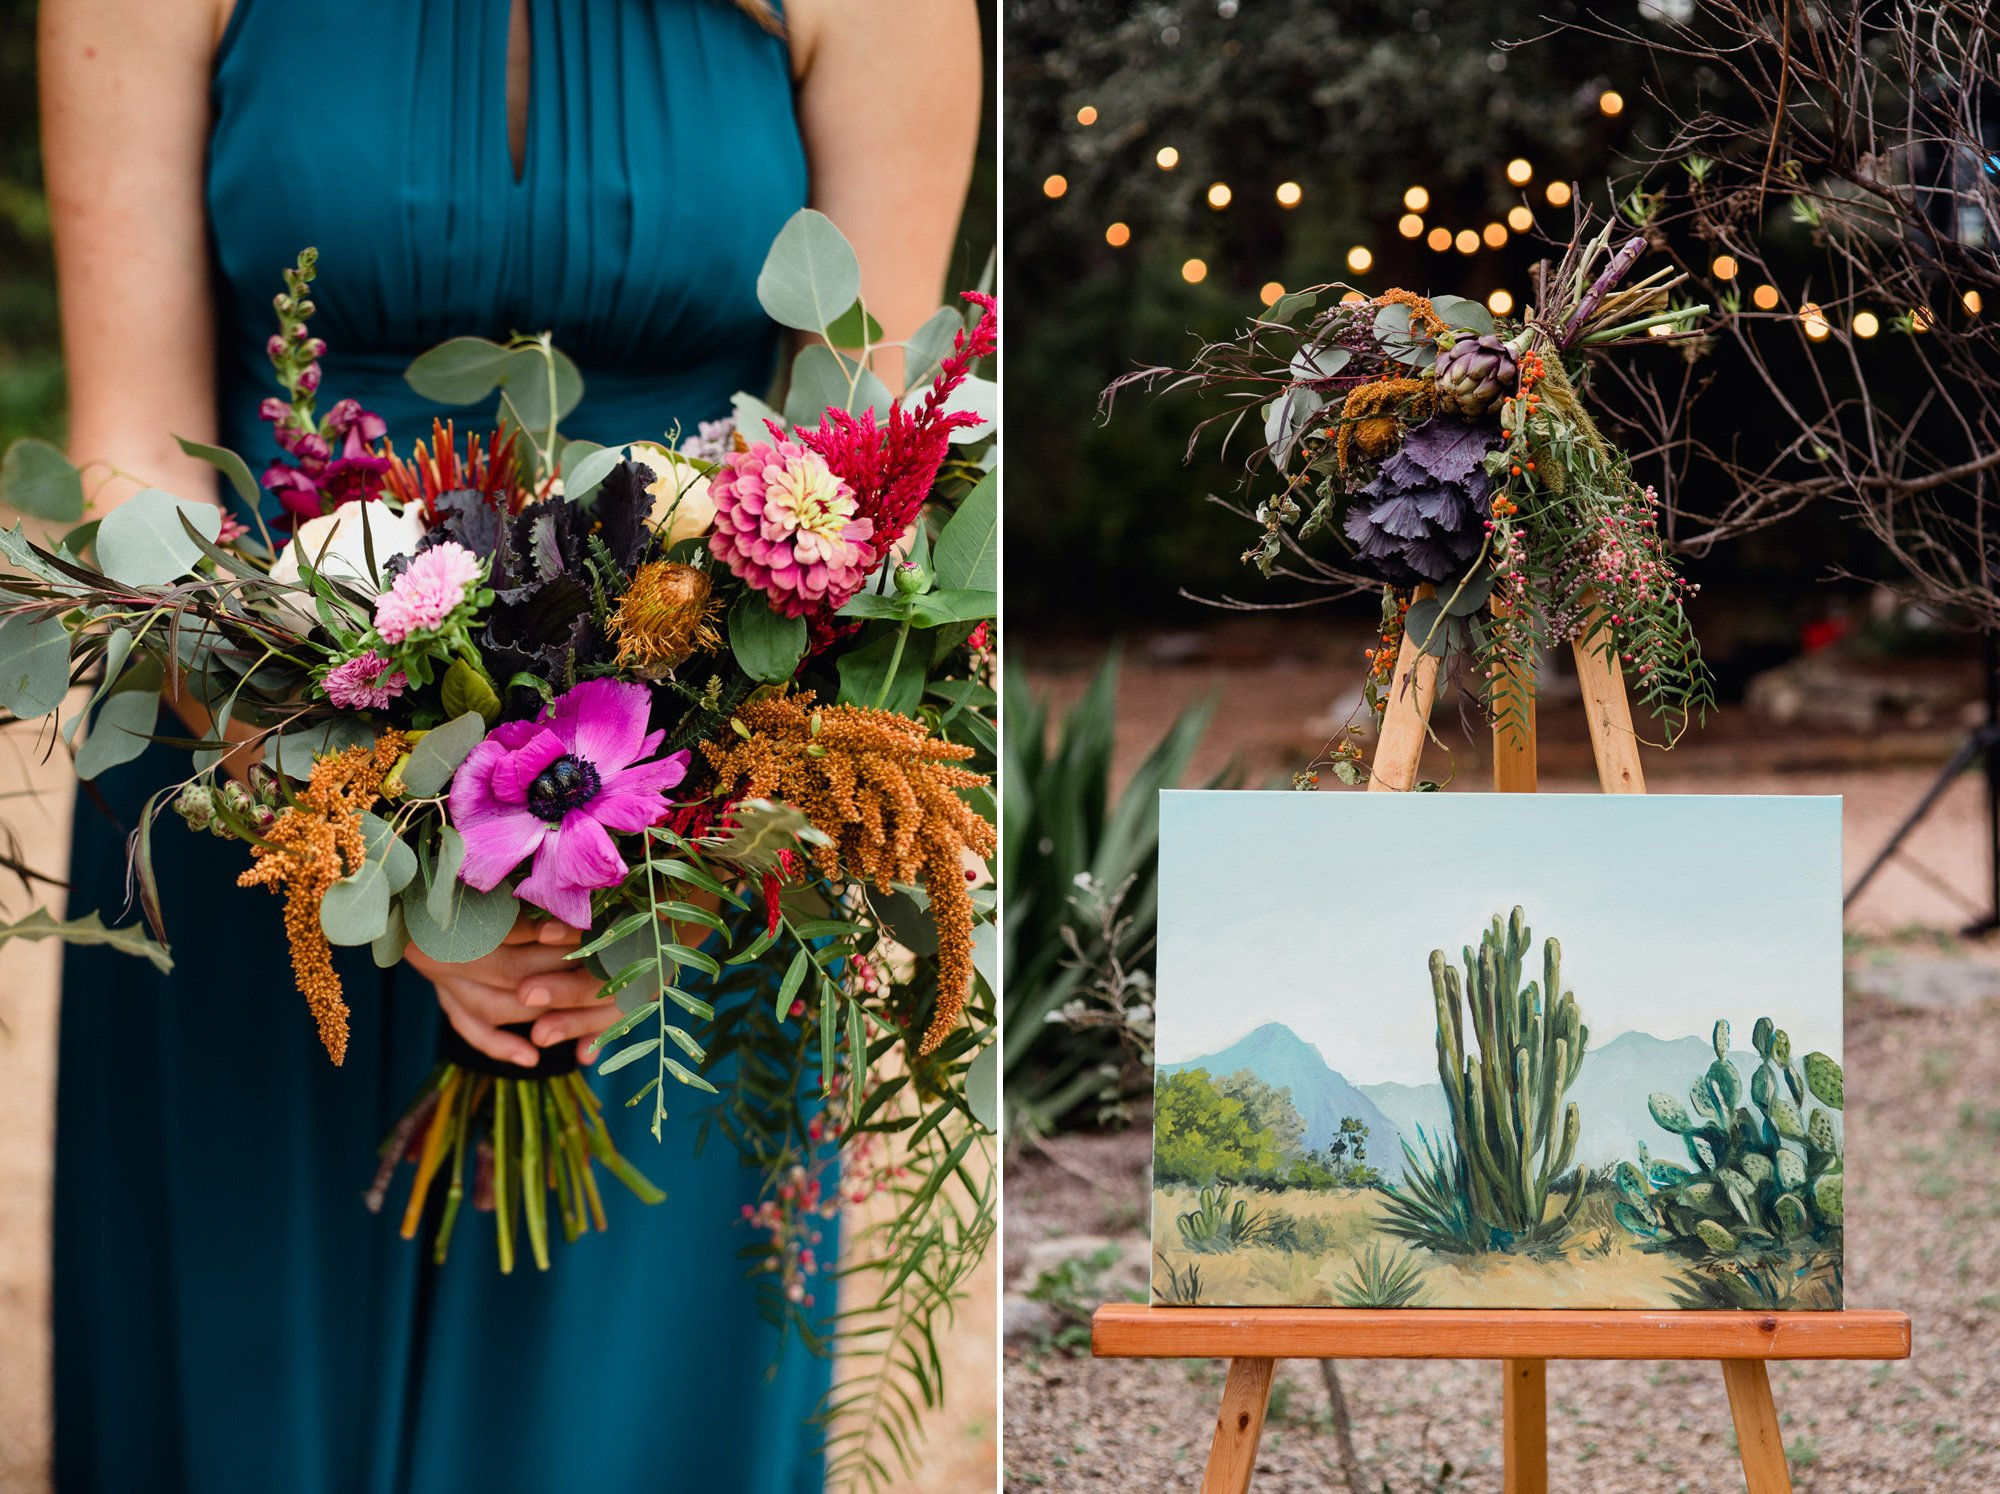 west texas inspired wedding at the greenhouse at driftwood, west texas wedding details, marfa texas inspired wedding, non-traditional wedding details